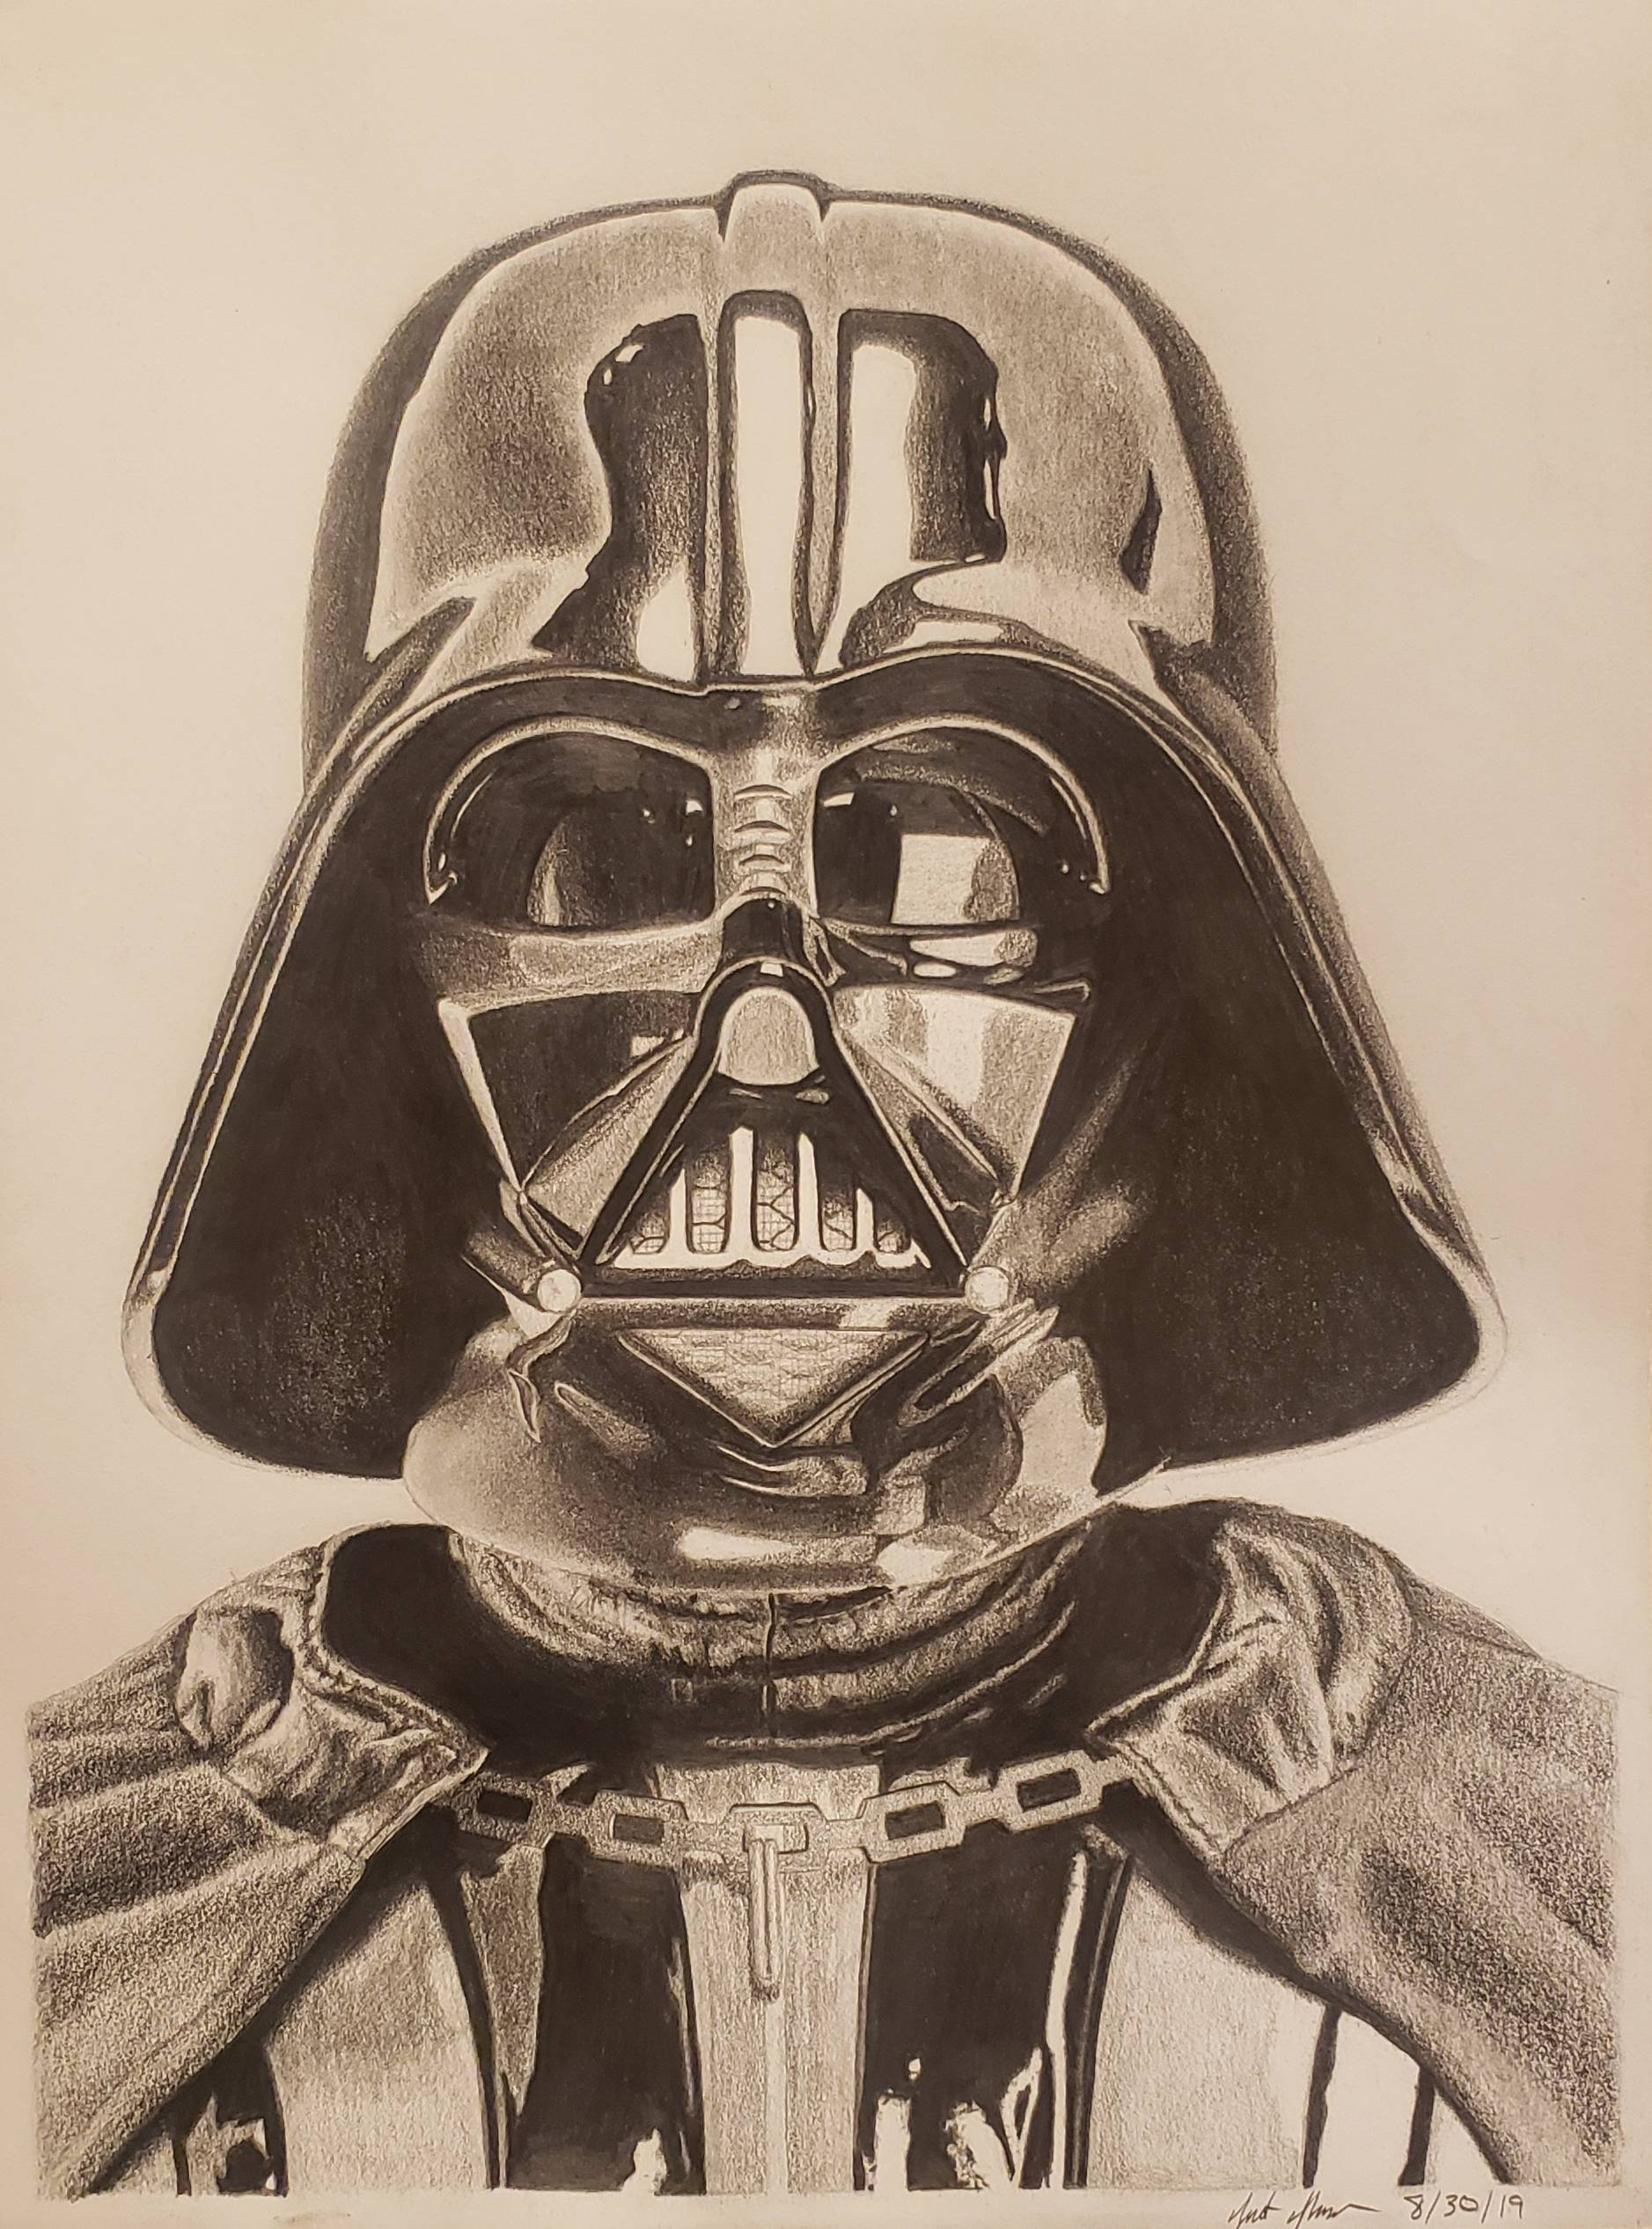 Took a stab at drawing one of my favorite characters, Darth Vader